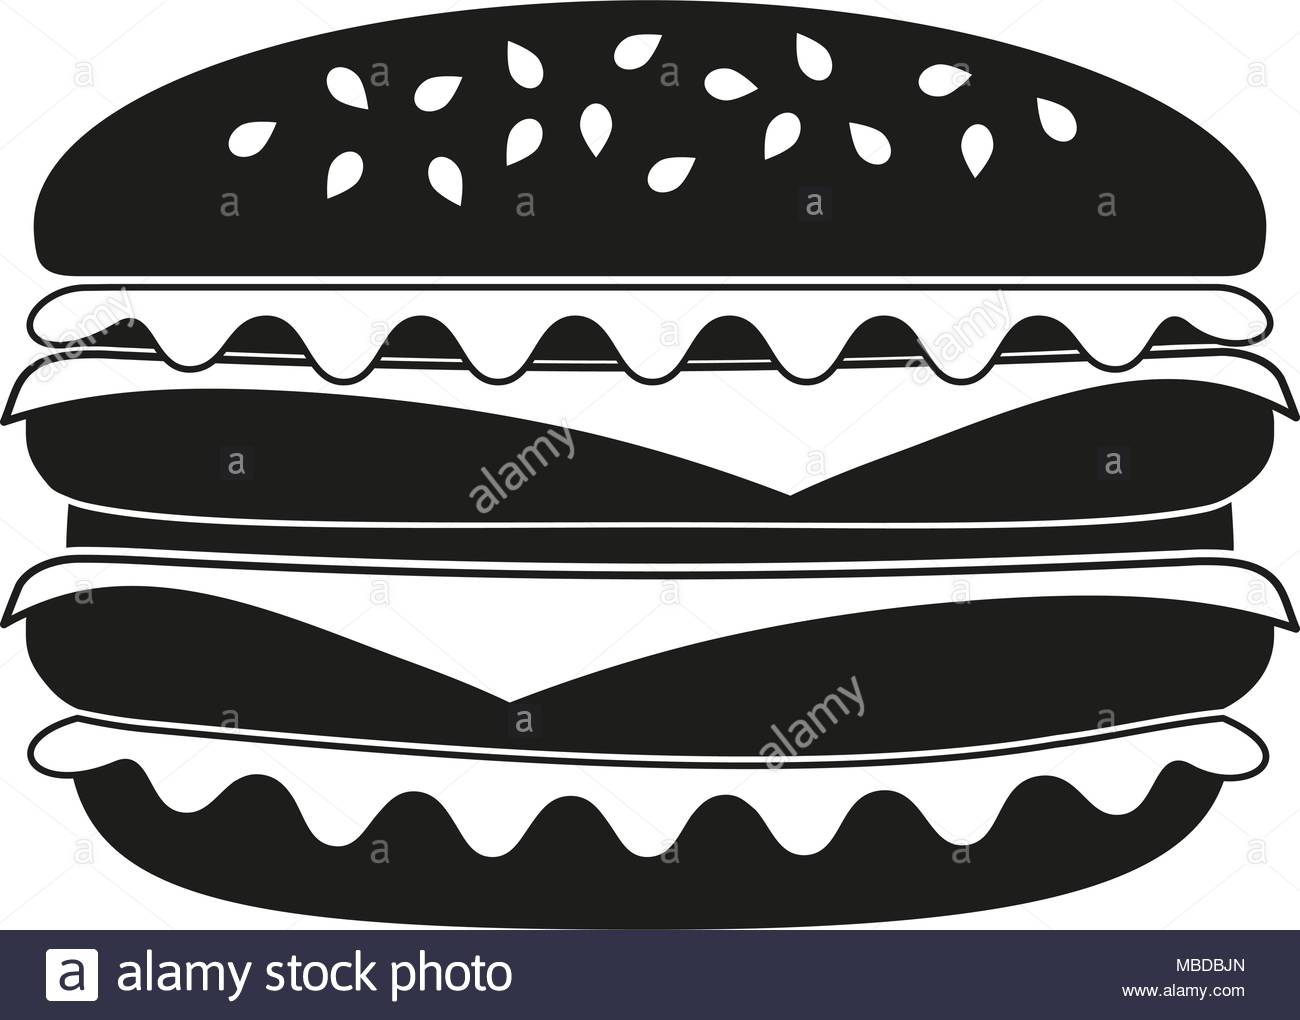 1300x1020 Burger Black And White Silhouette. Comfort Fastfood Vector